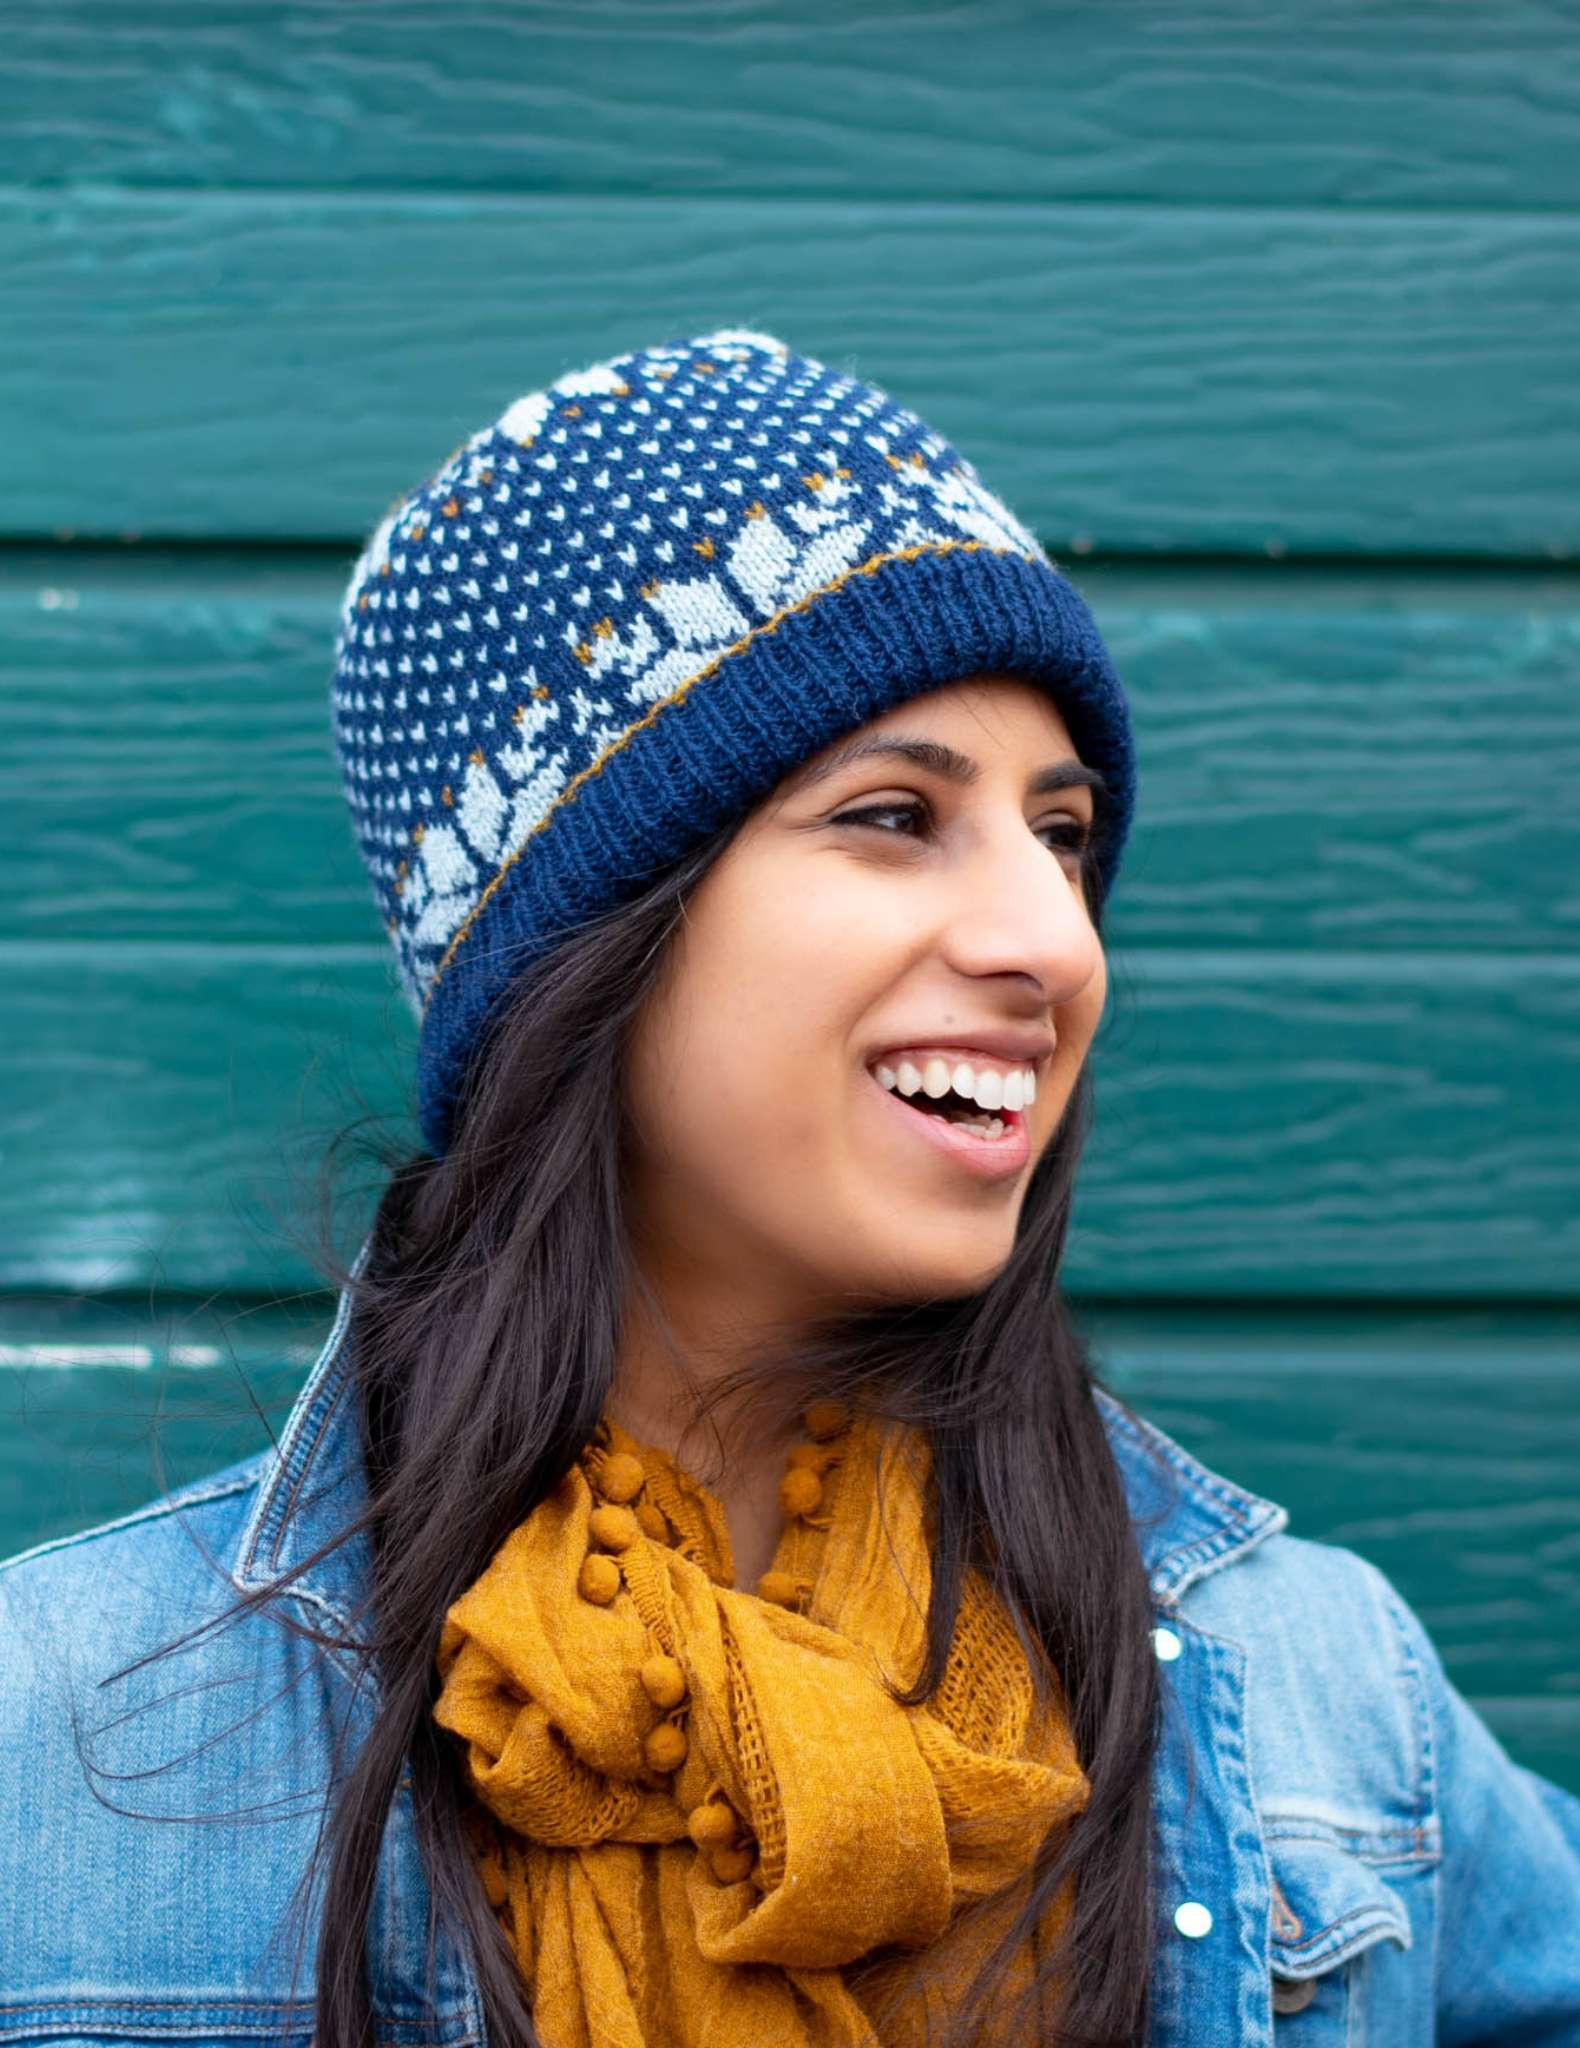 a woman with dark hair wears a dark blue and white colourwork hat, a yellow scarf and open denim jacket